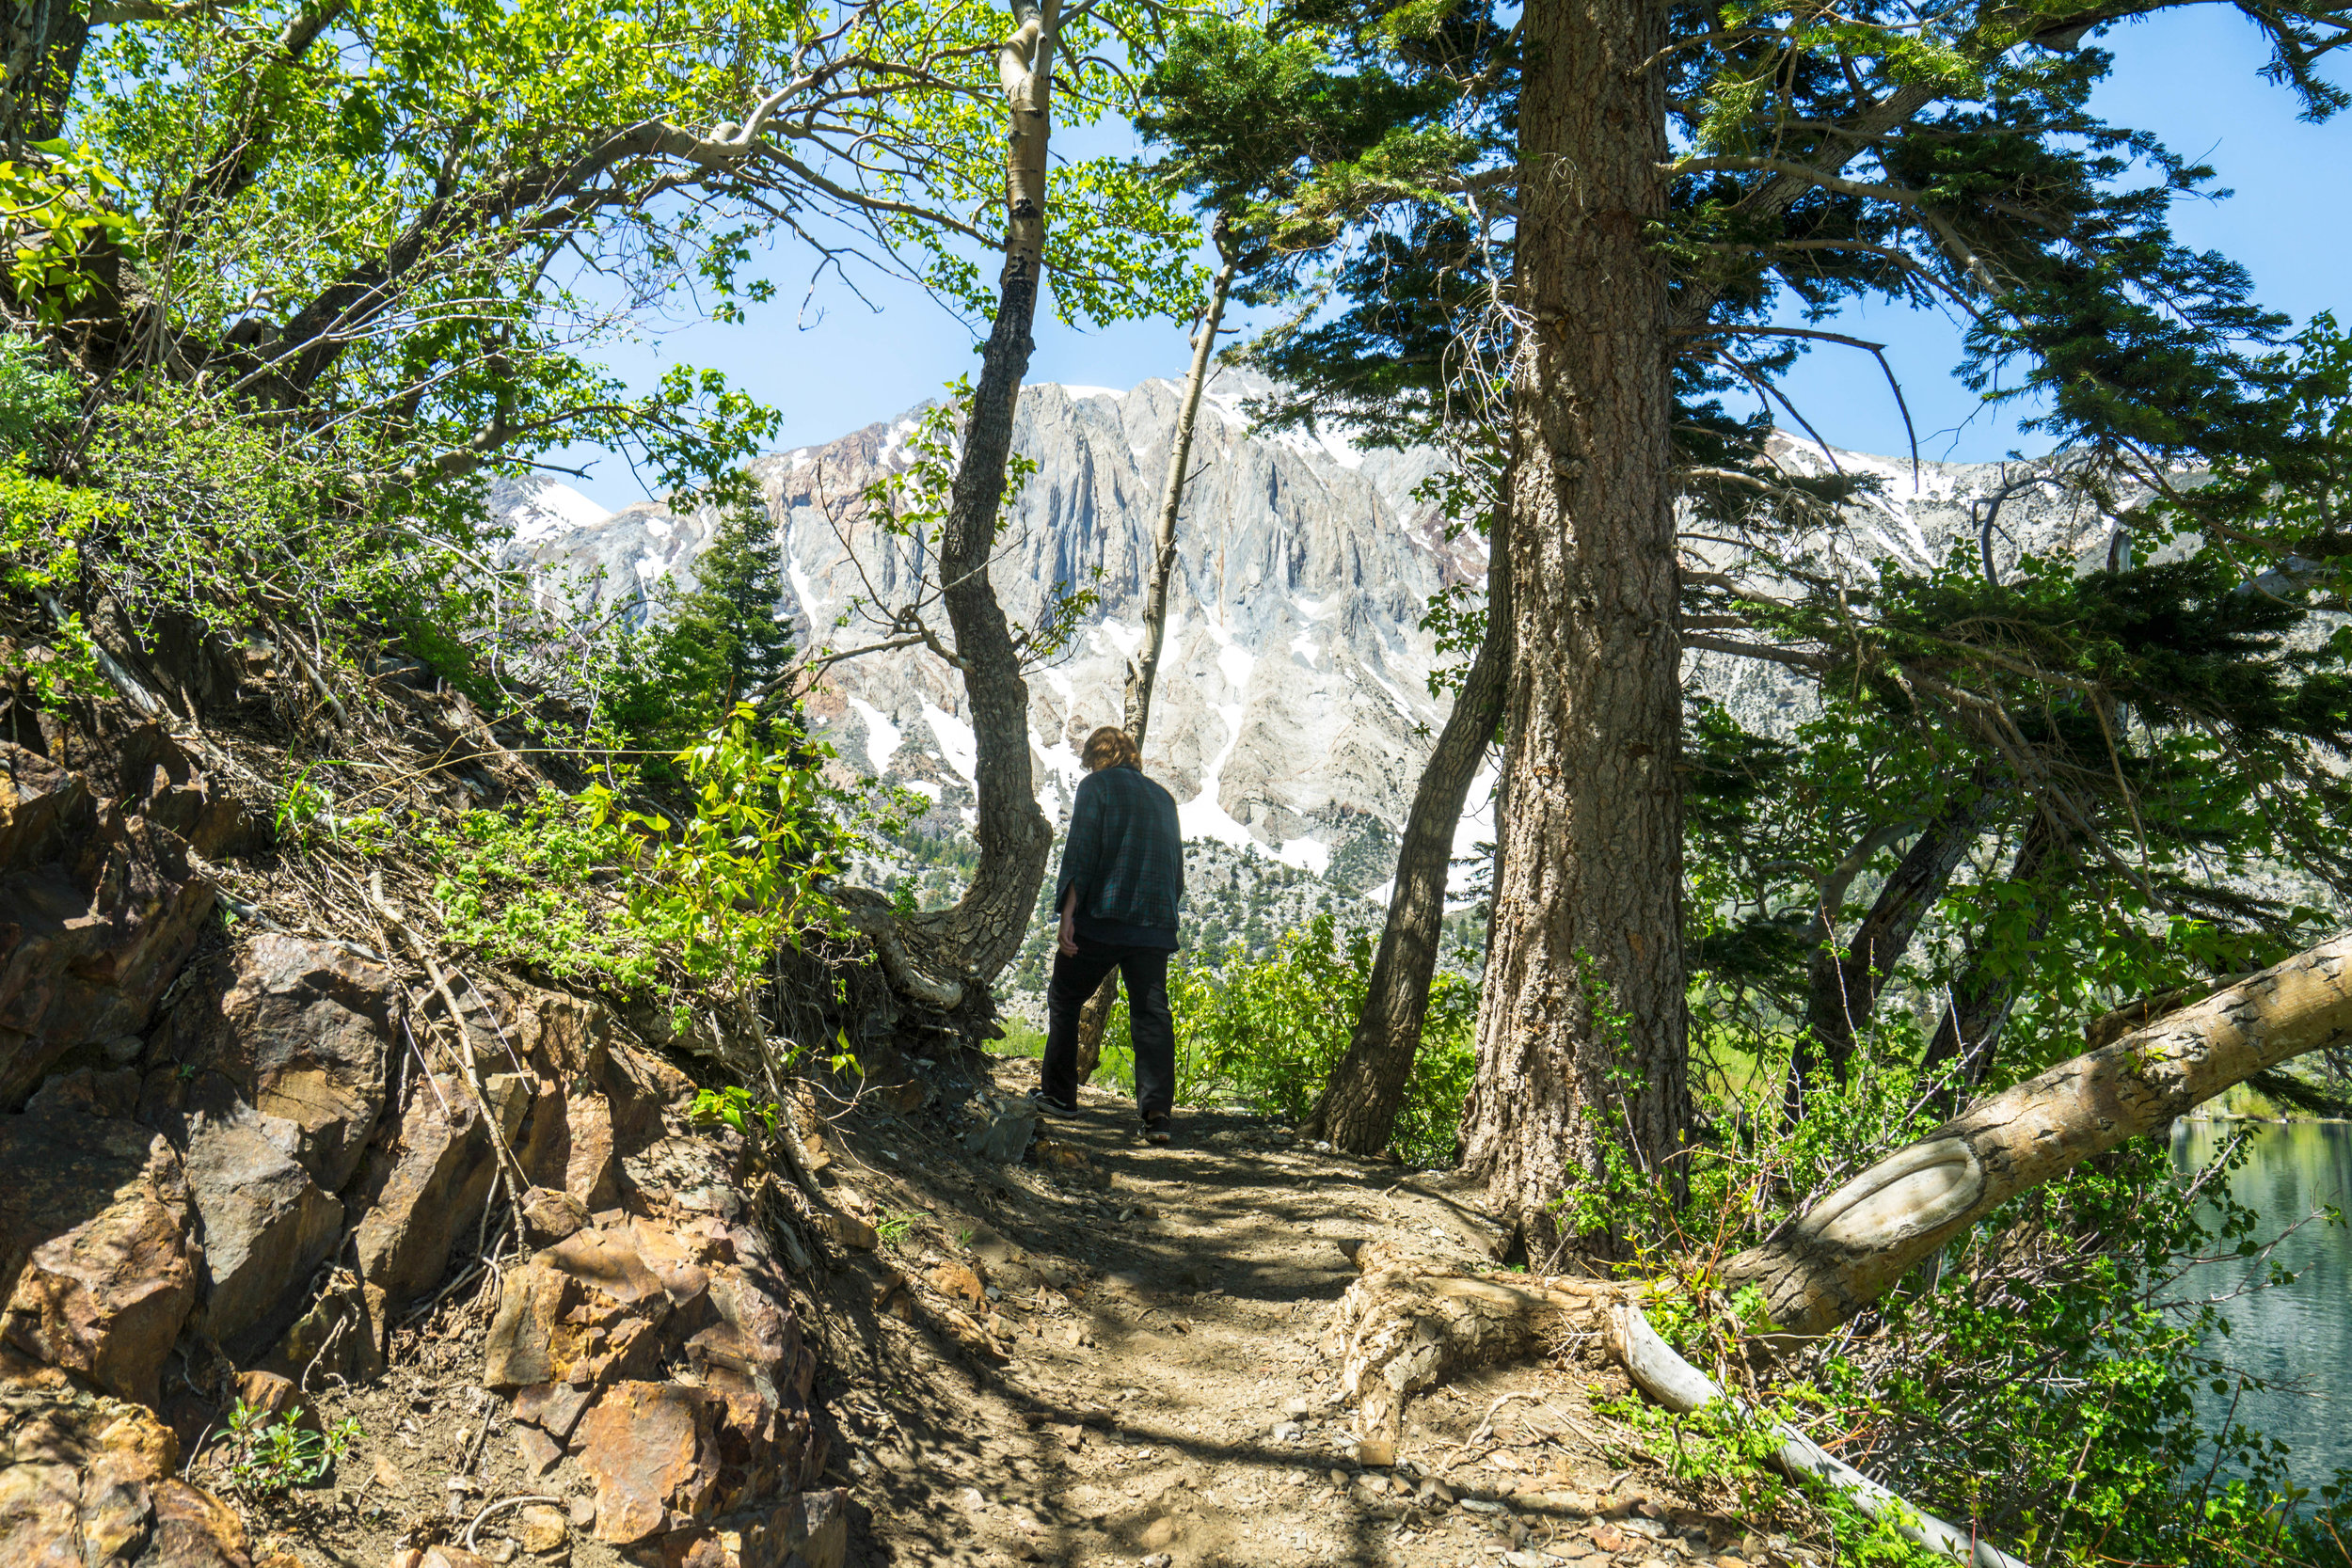 This hike is a geologist's paradise. The trail was littered with varying rock types & signs of the Sierra's seismic origins.